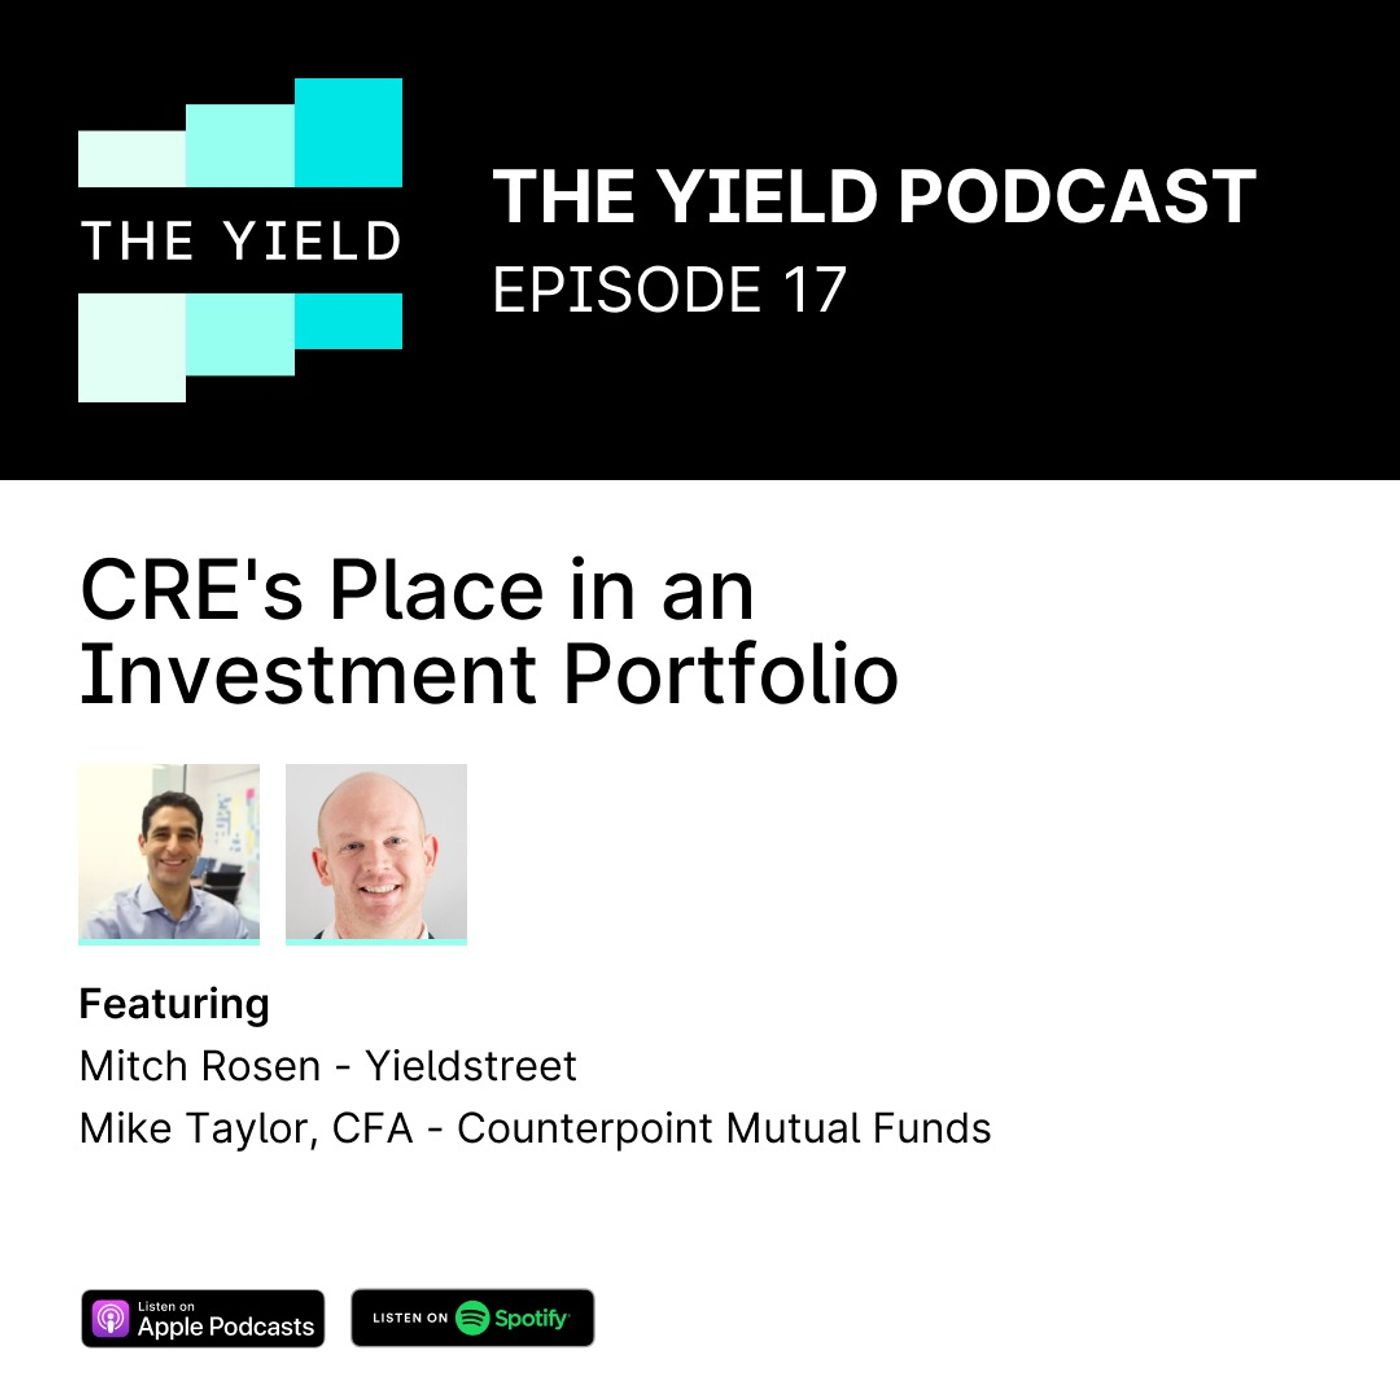 CRE's Place in an Investment Portfolio